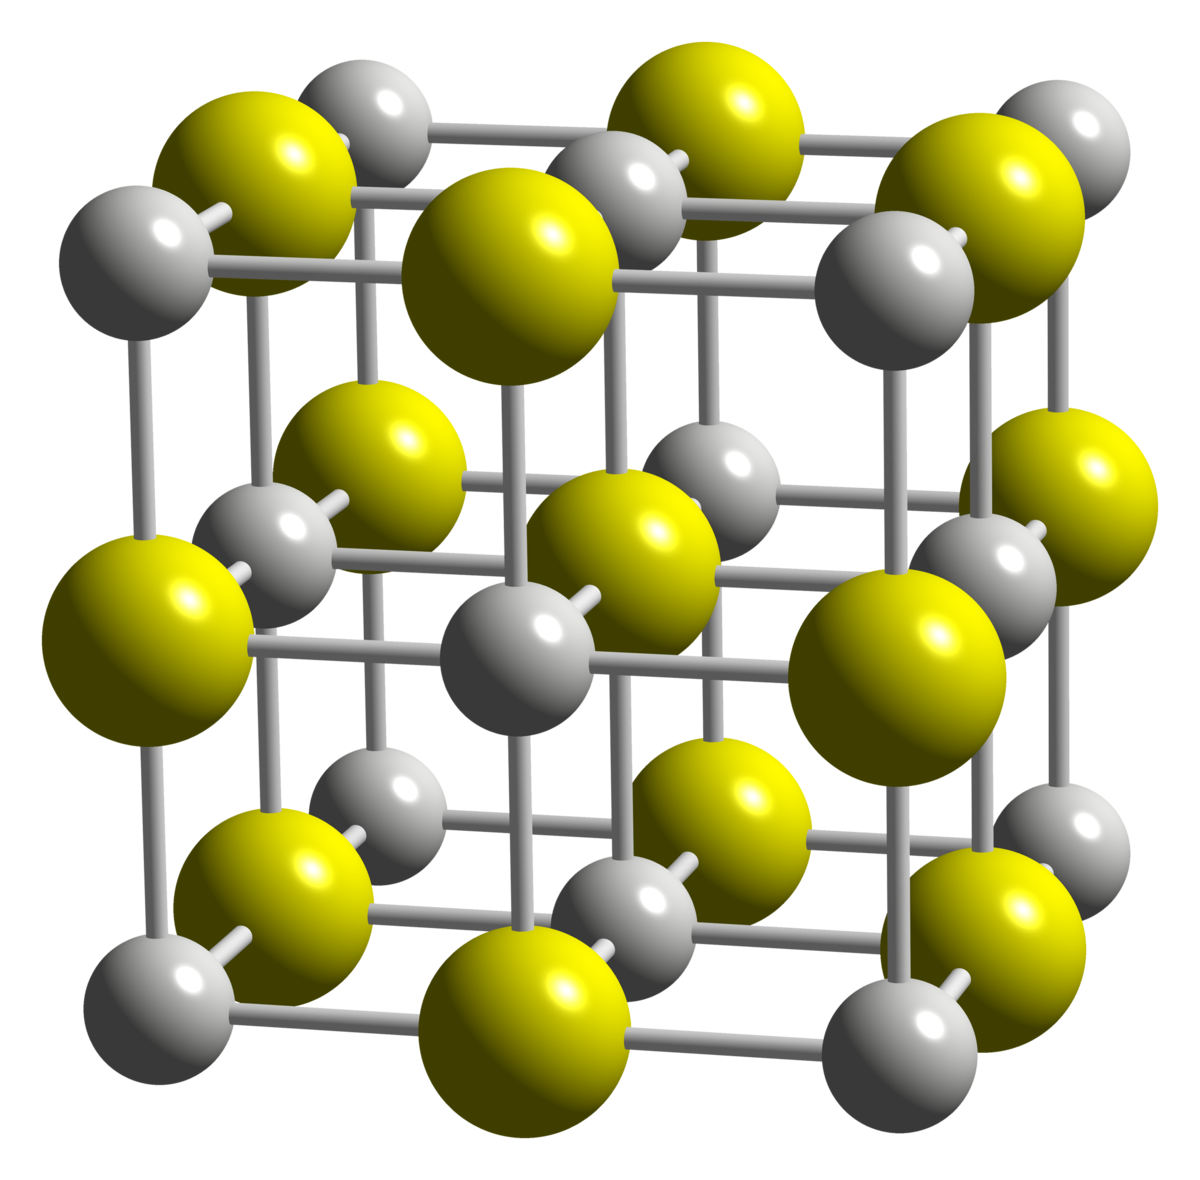 Preparation of an ionic compound from